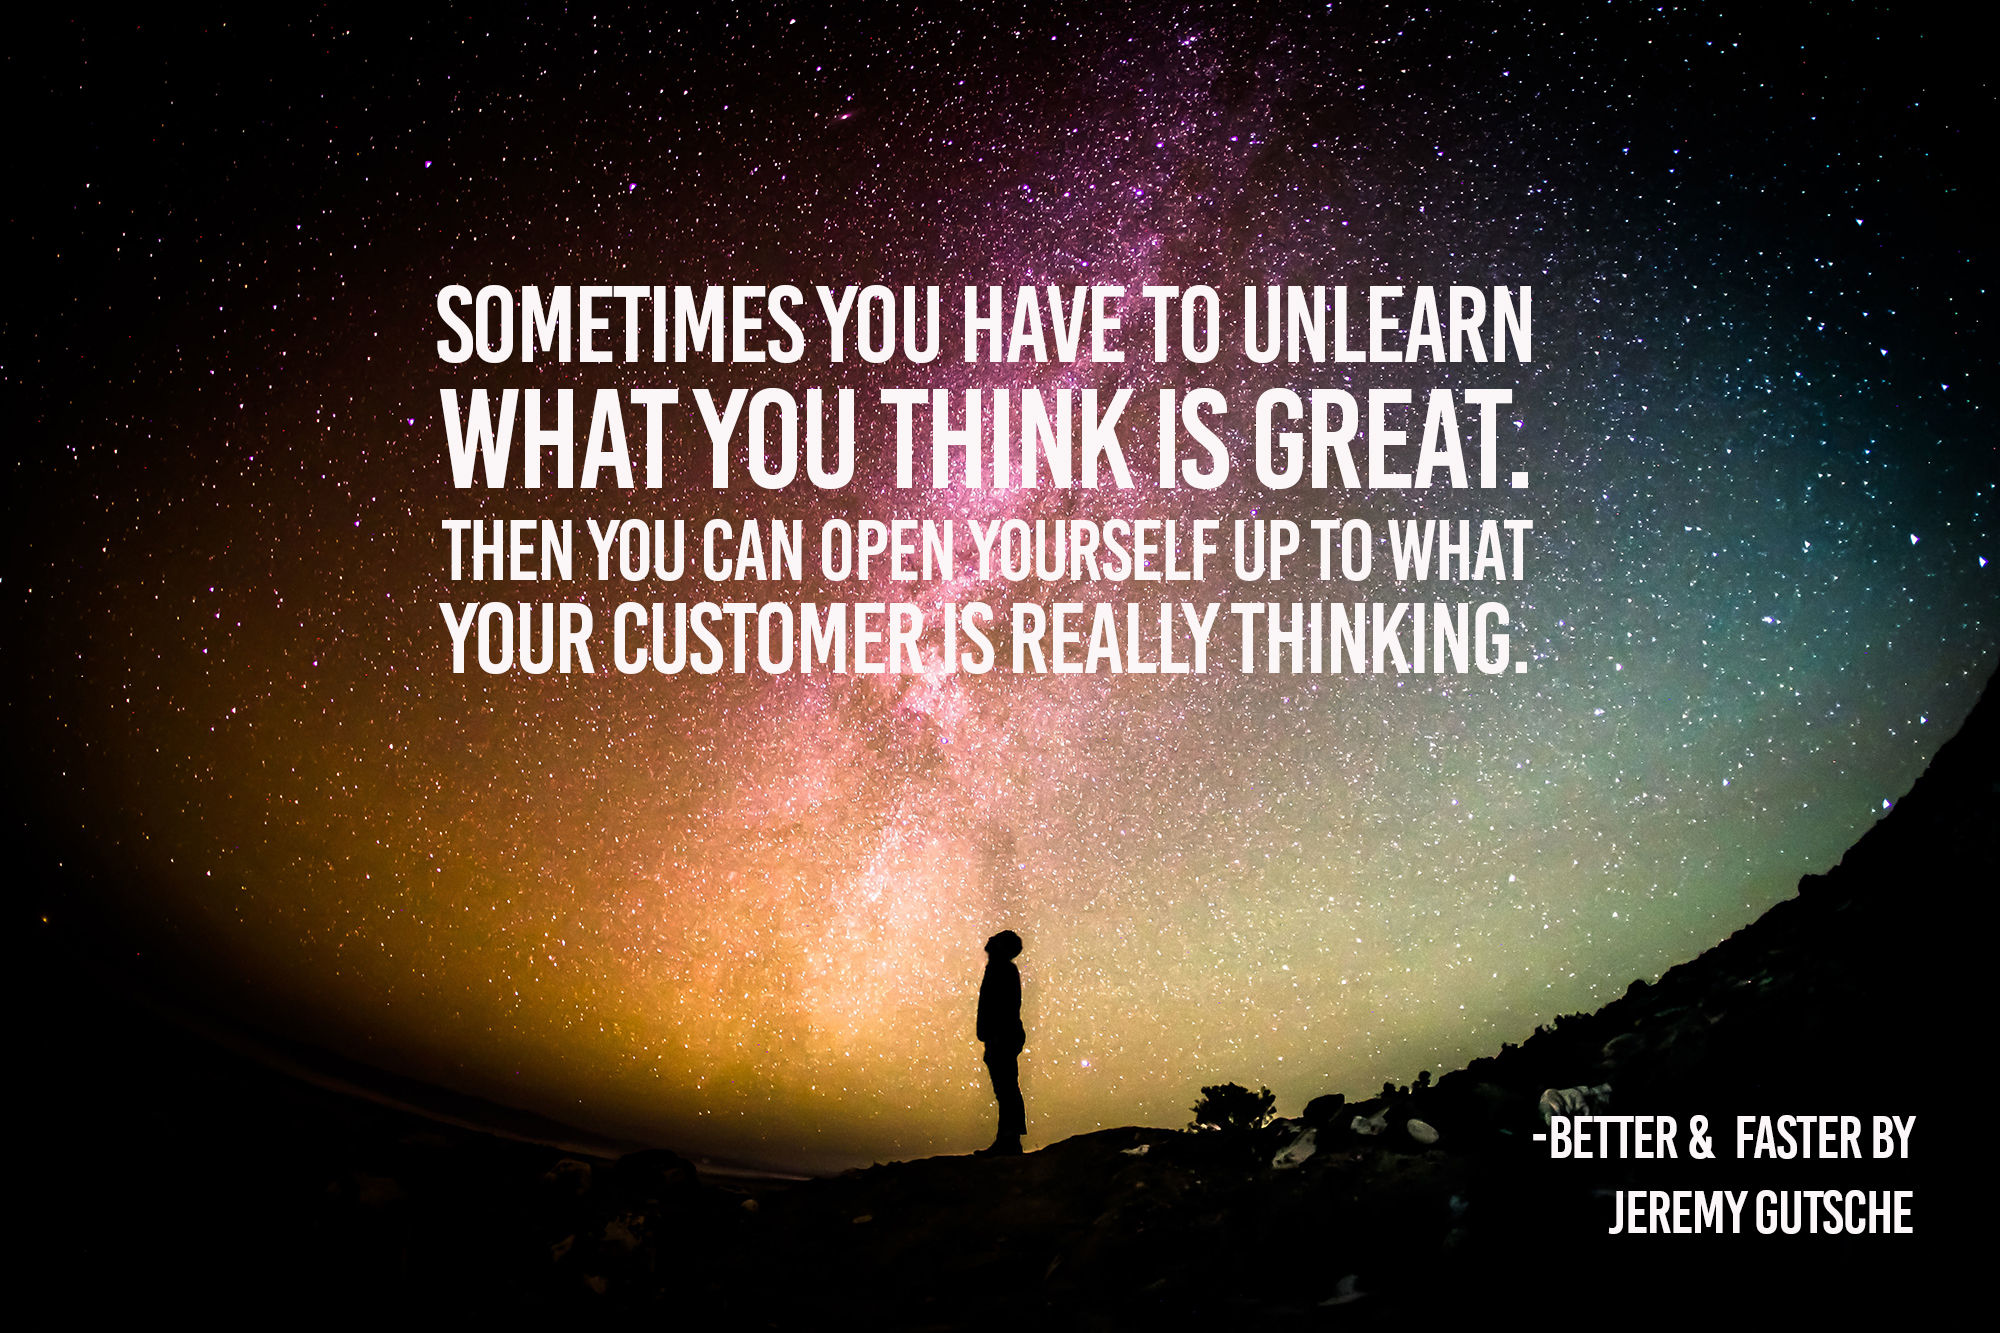 sometimes you have to unlearn what you think is great. Then you can open yourself up to what your customer is really thinking